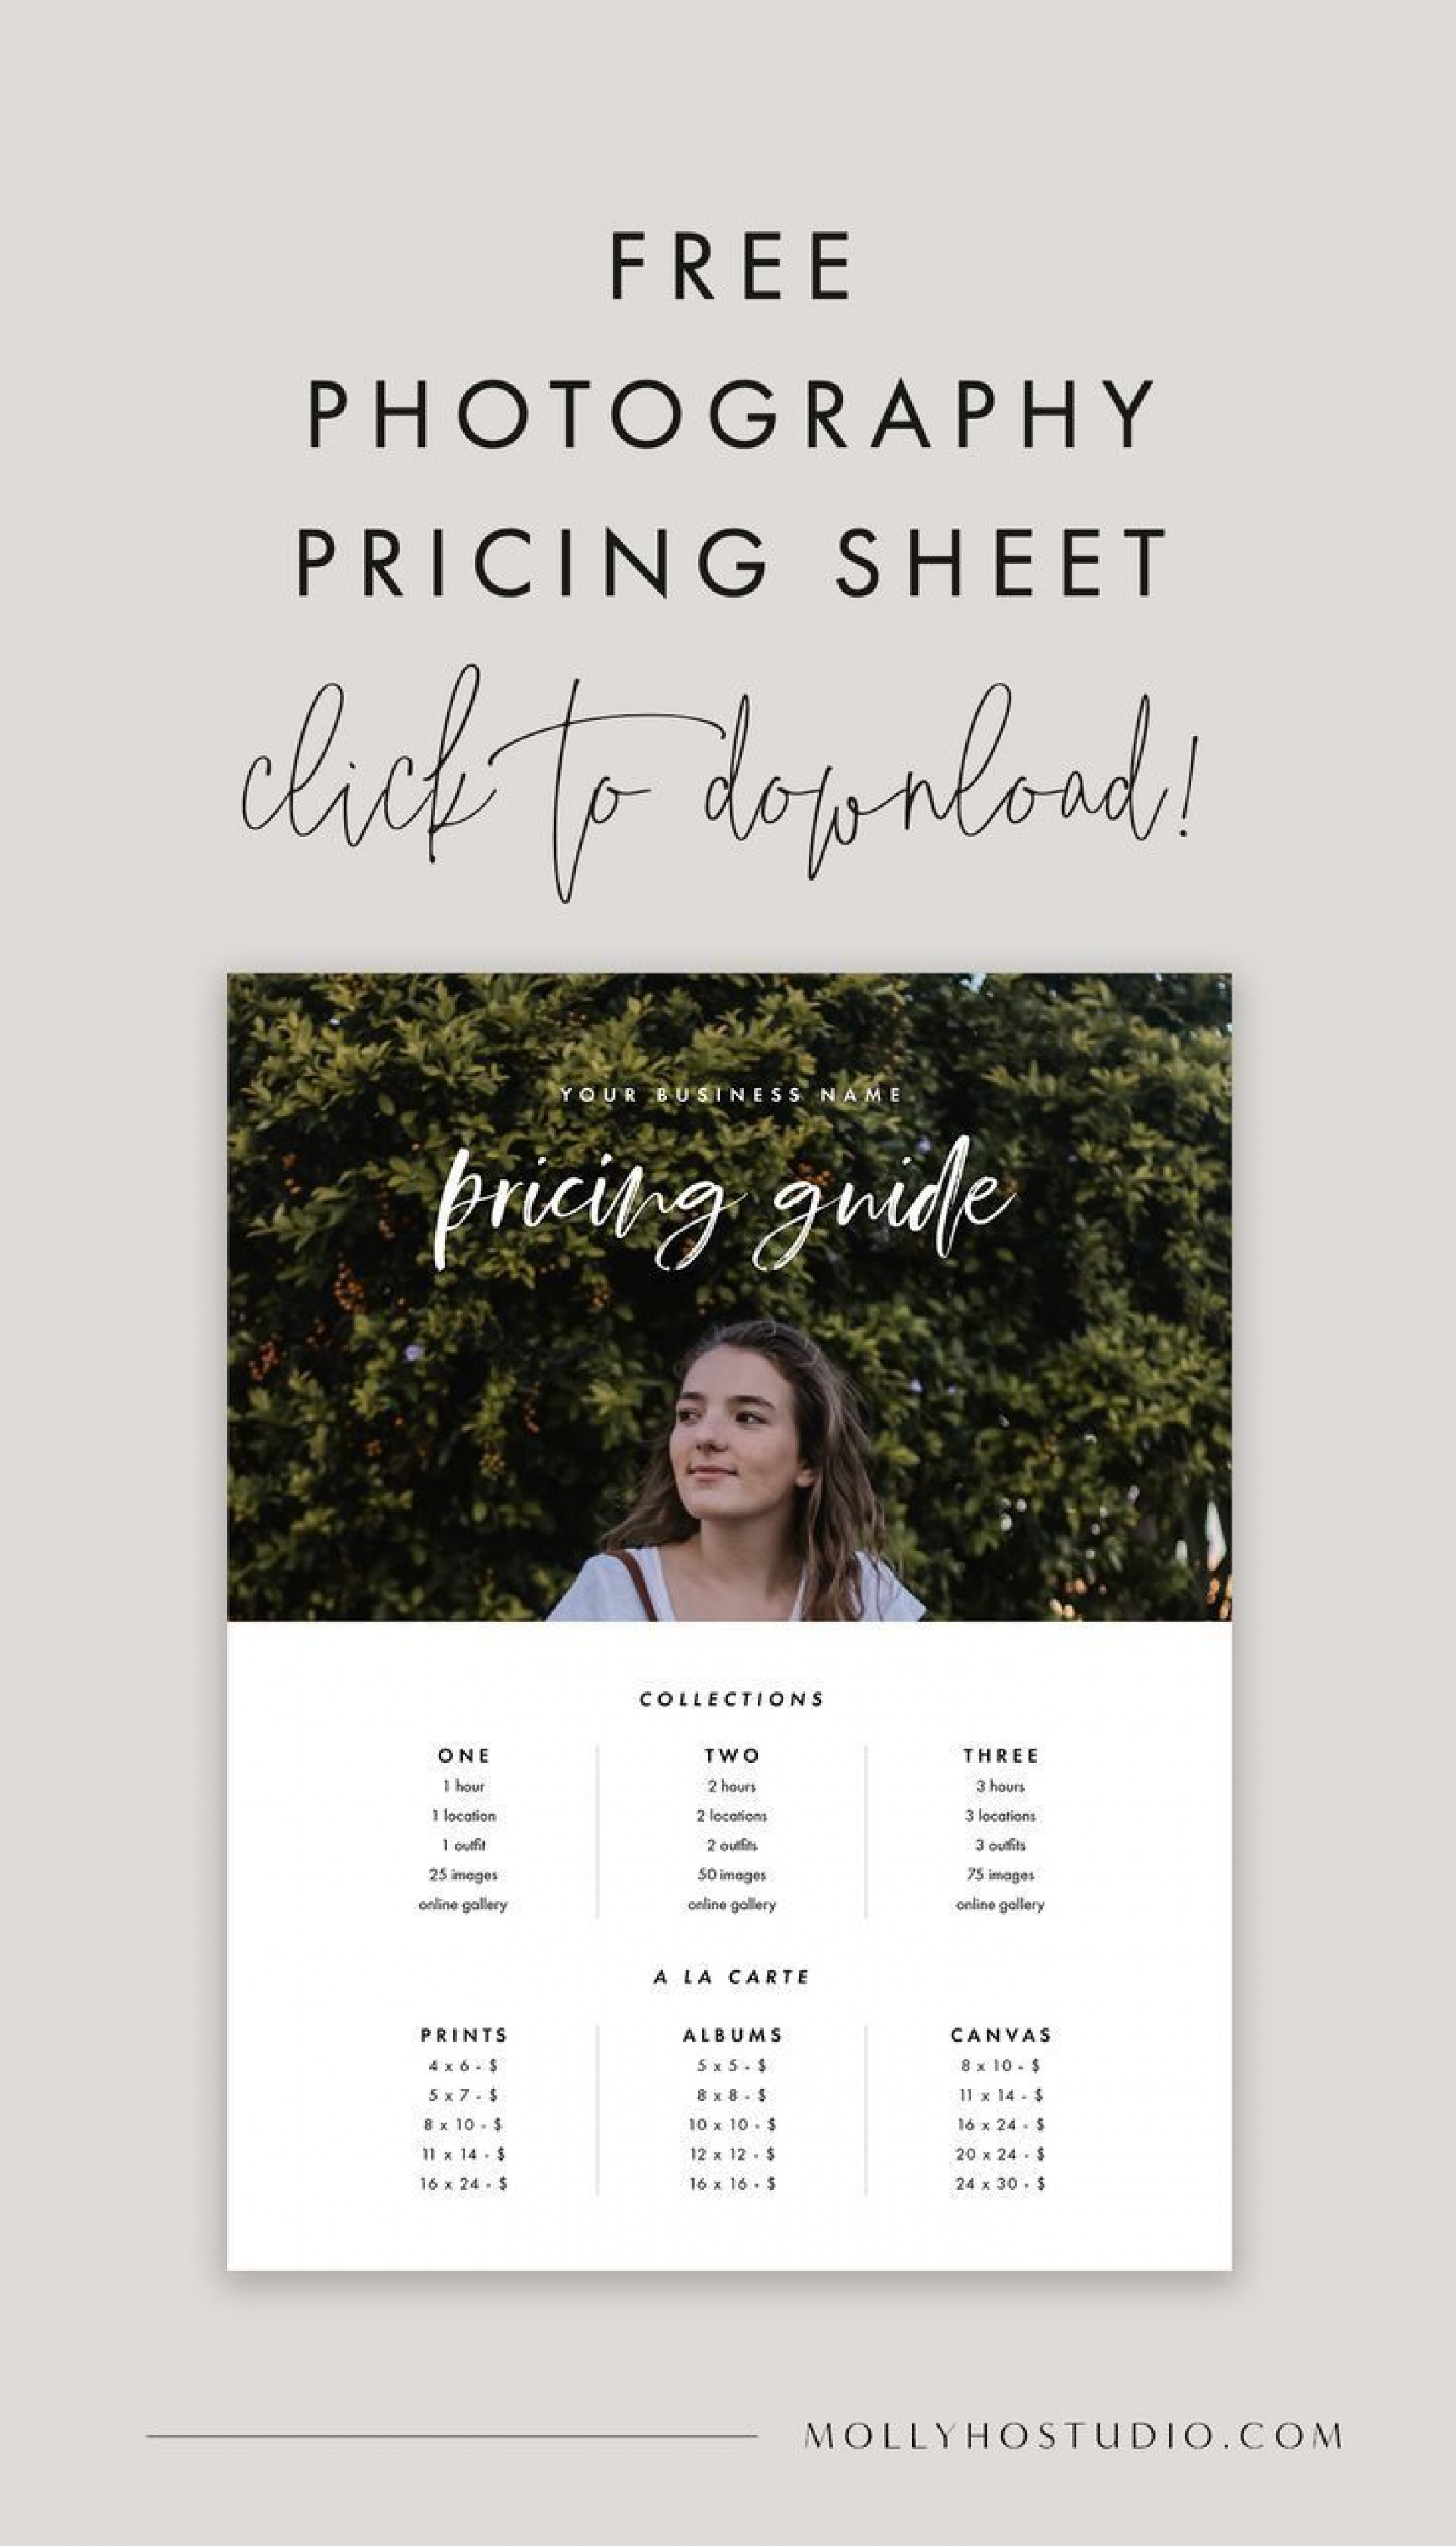 001 Top Free Photography Package Template Concept  Pricing1920